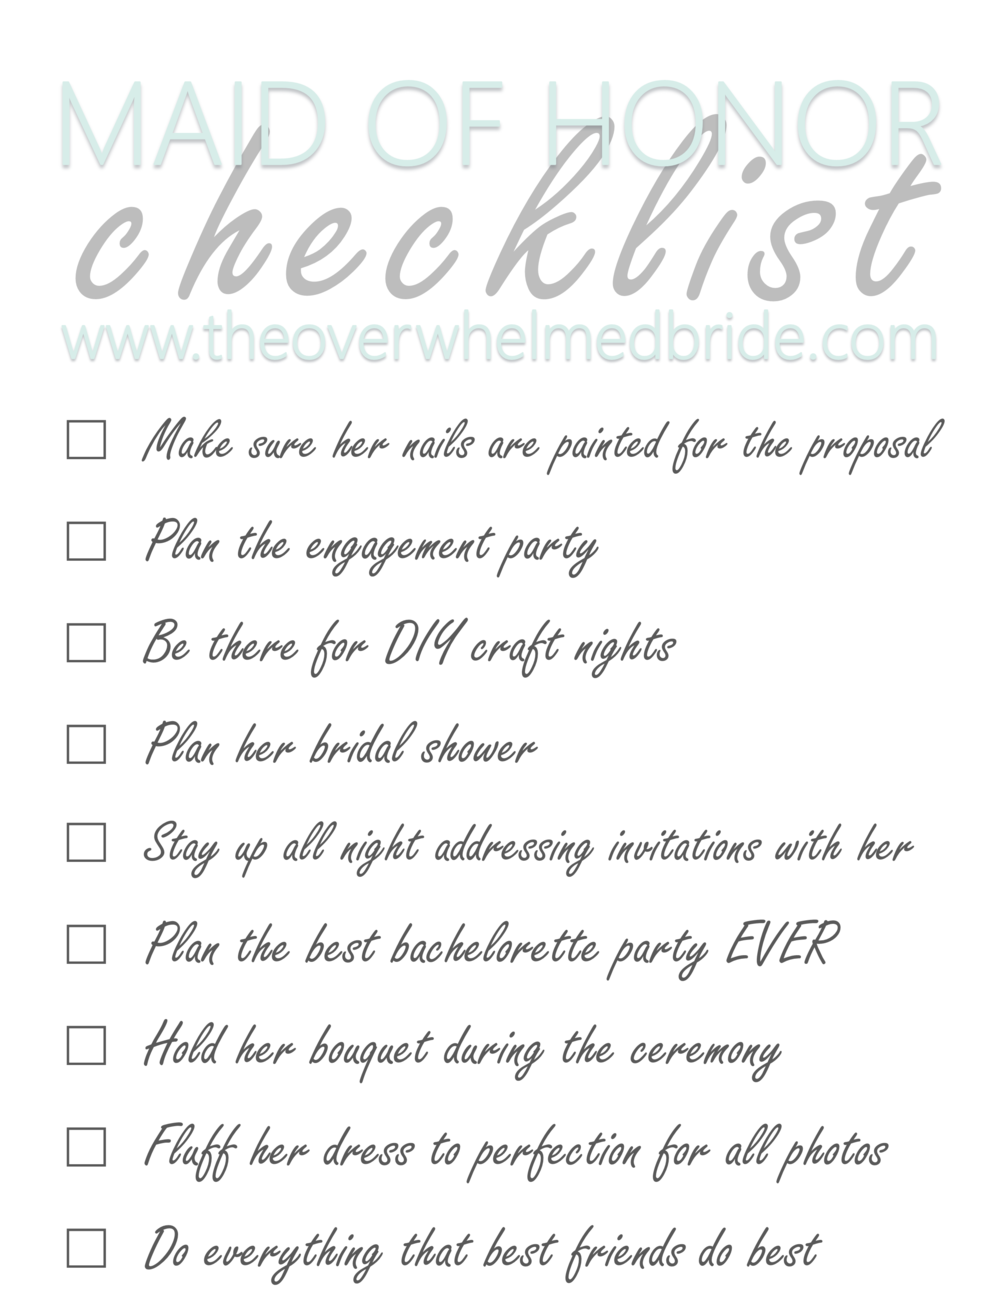 Maid of Honor Checklist - The Overwhelmed Bride // Bridal Lifestyle + Wedding Blog